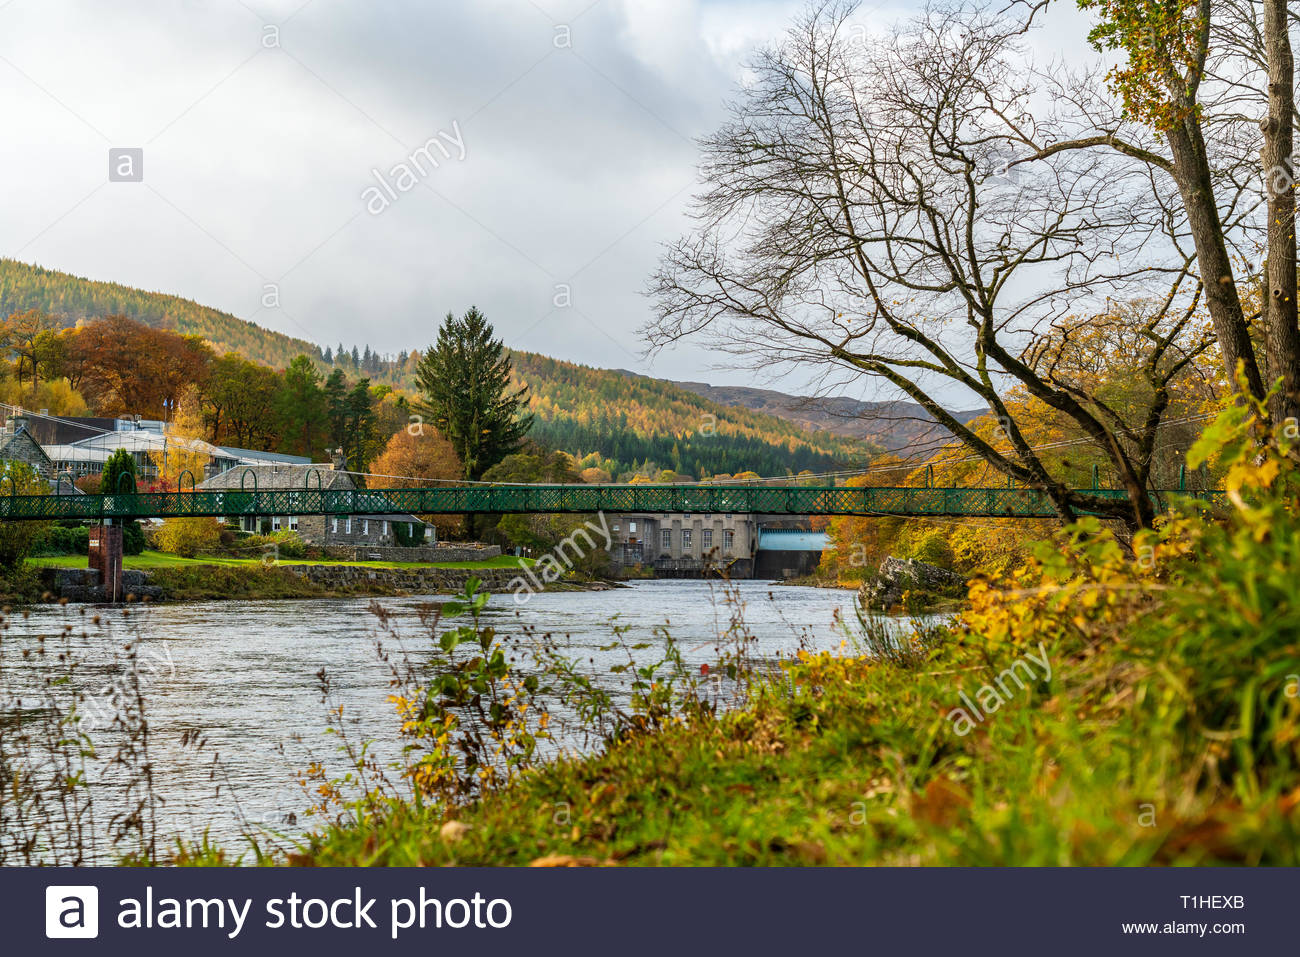 A view of the Tummel river  running along Pitlochry, in Perthshire, Scotland Stock Photo